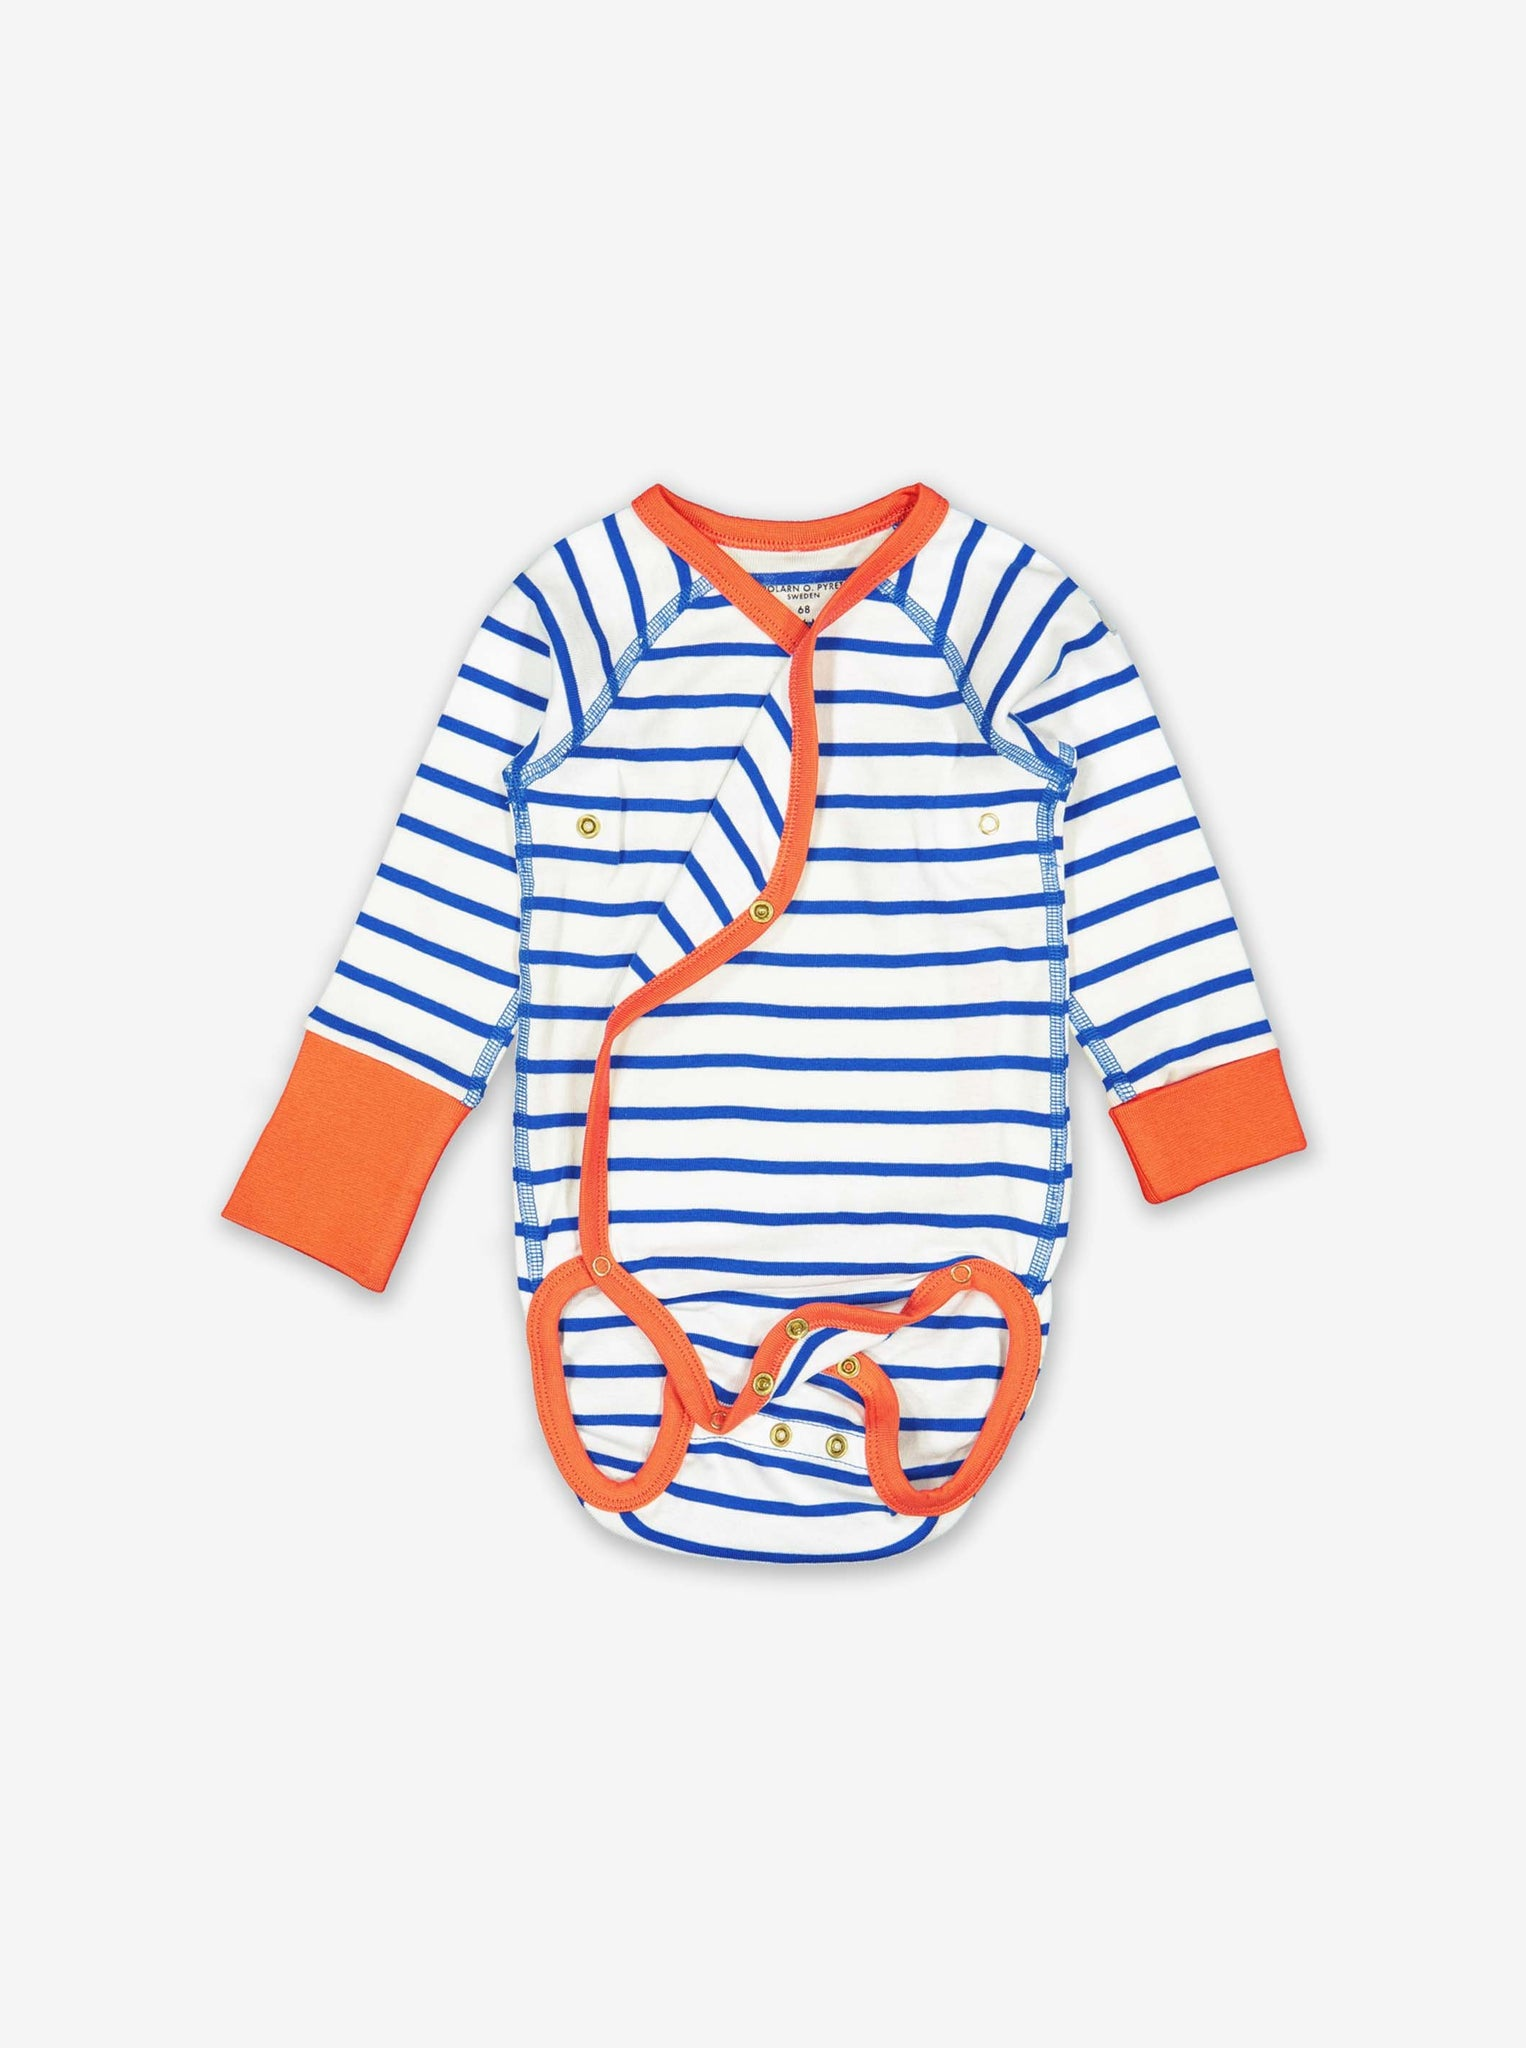 Striped Baby Top